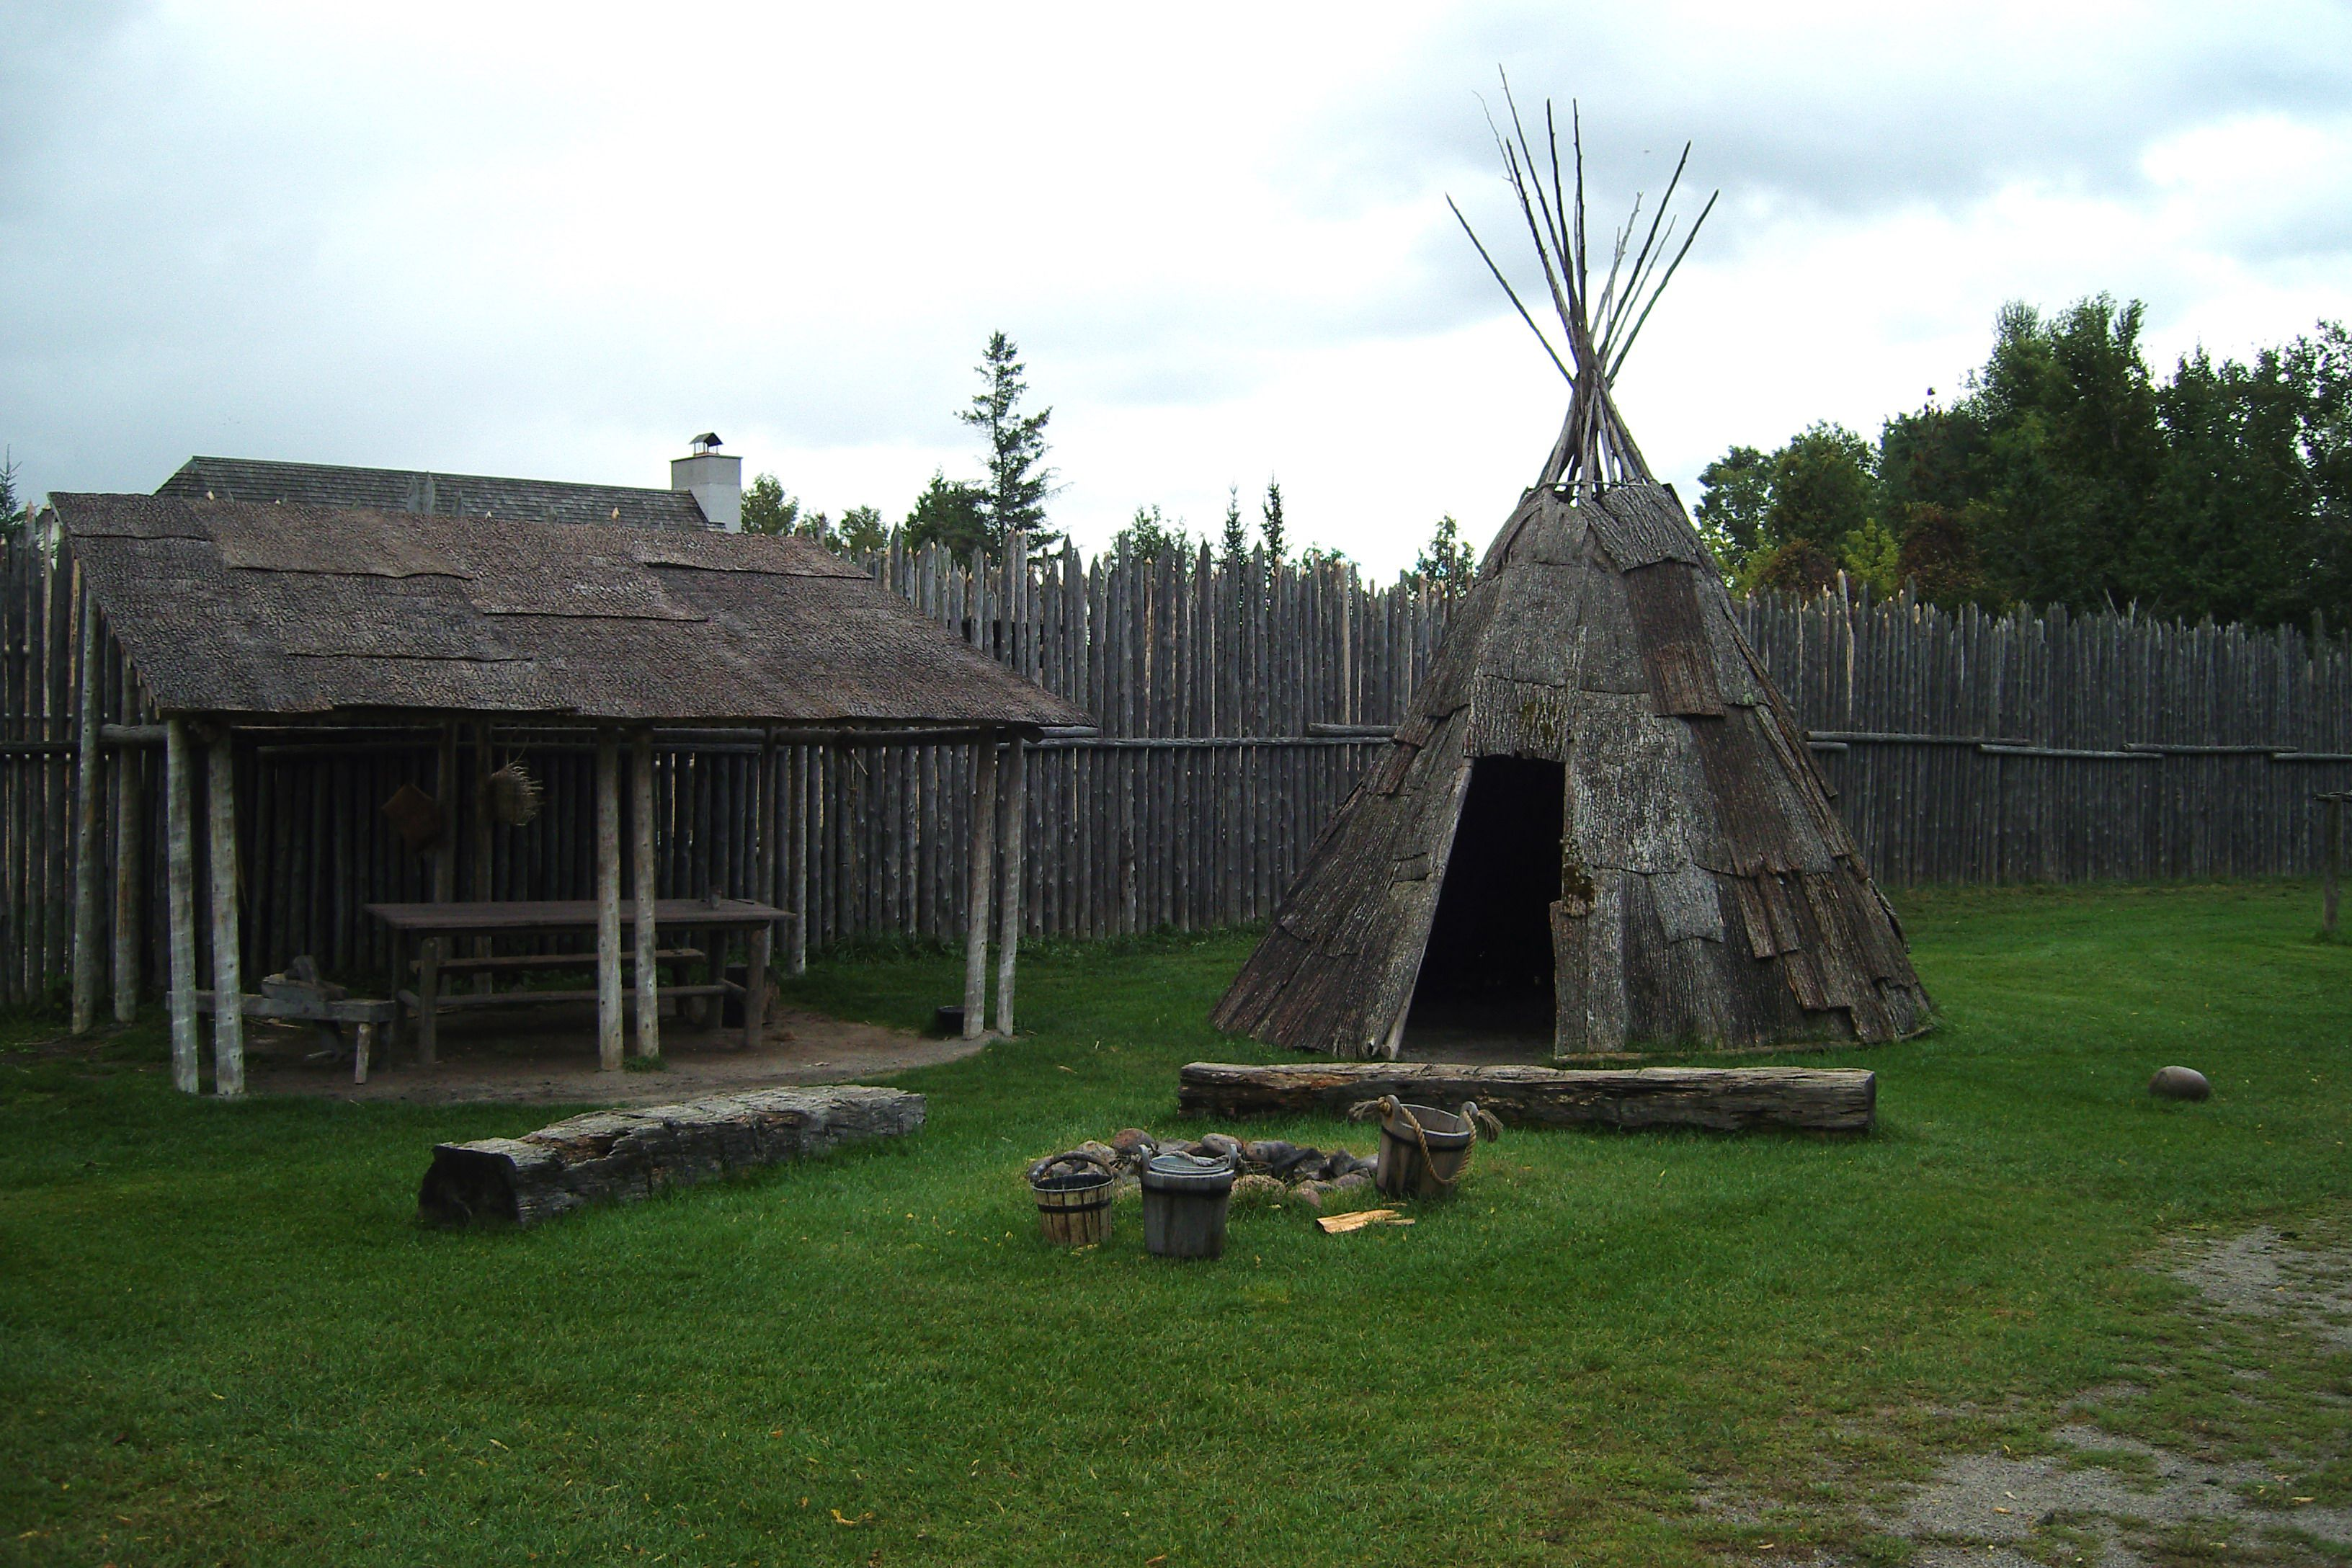 """A reconstructed wigwam, or shelter covered in bark, found in the """"Native Area"""" of the site, Saint Marie Among the Hurons."""